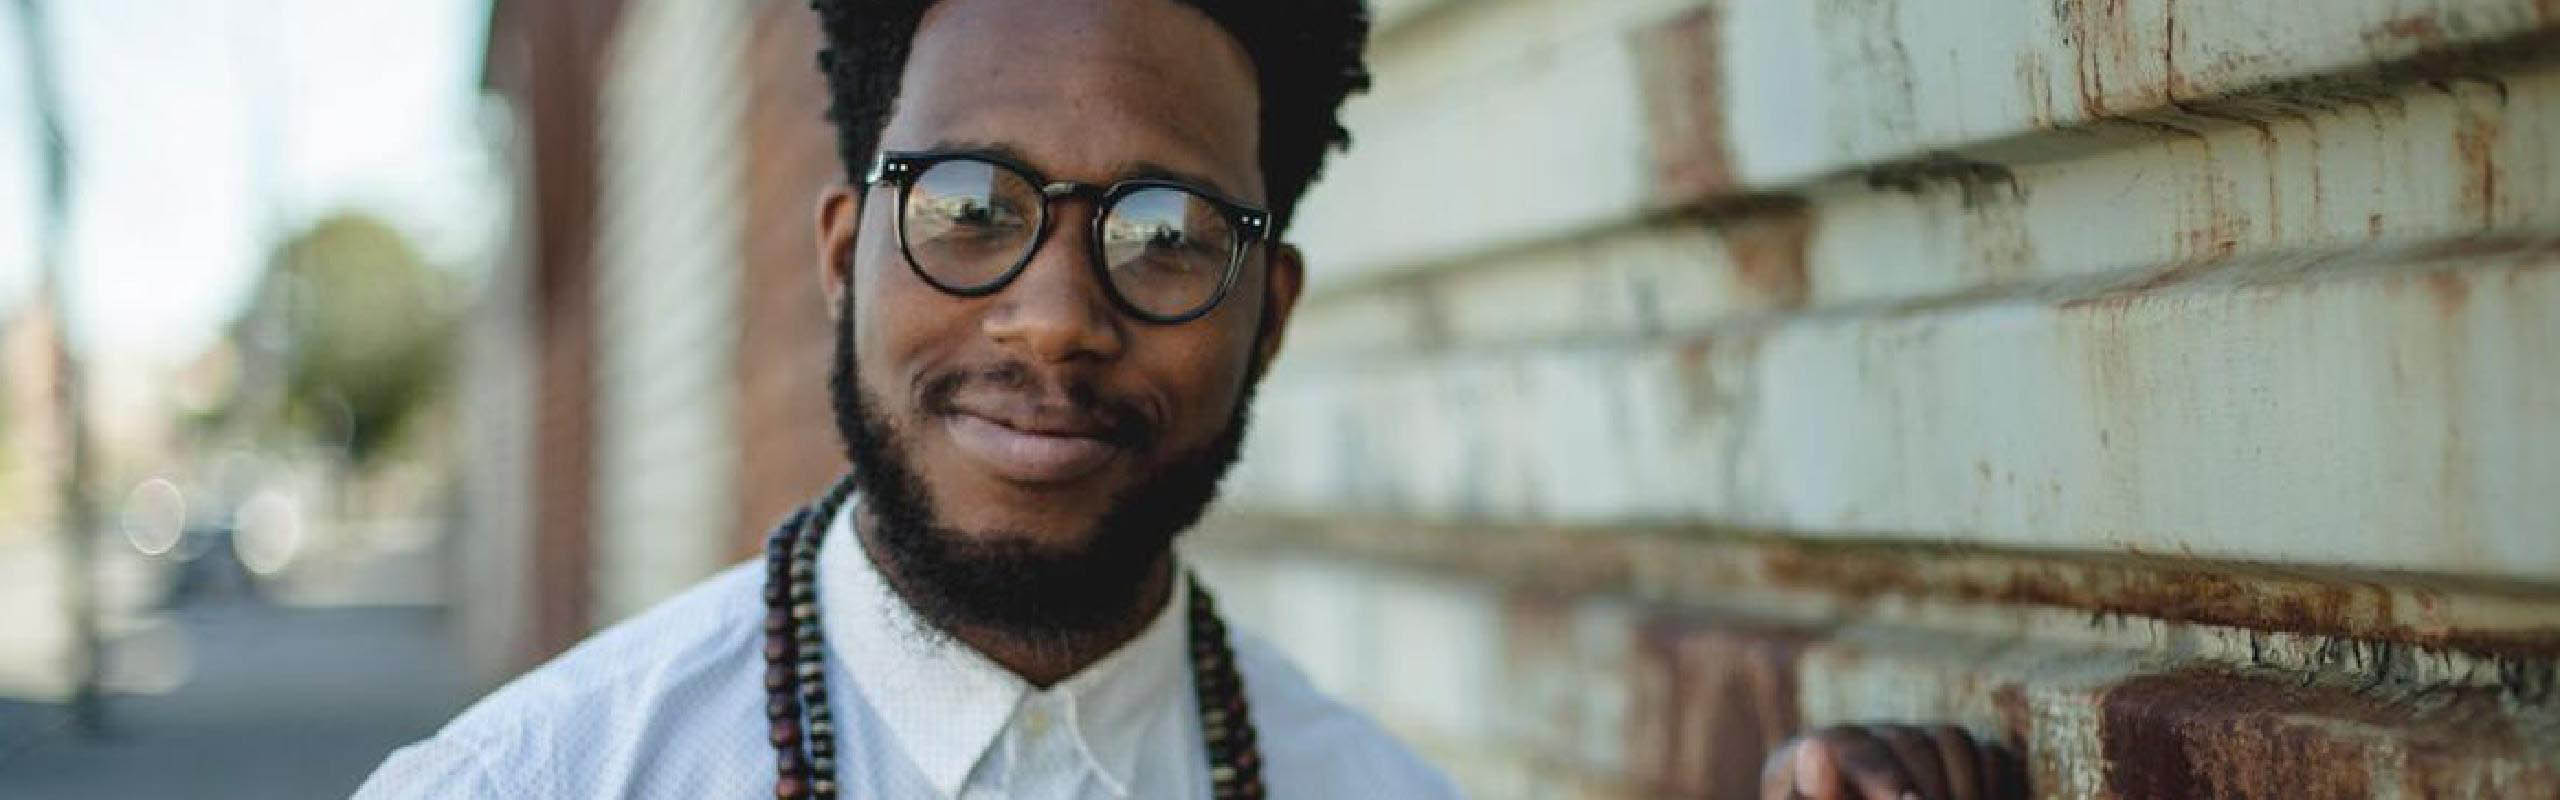 cory-henry-the-funk-apostles-1509708821.91.2560x1440